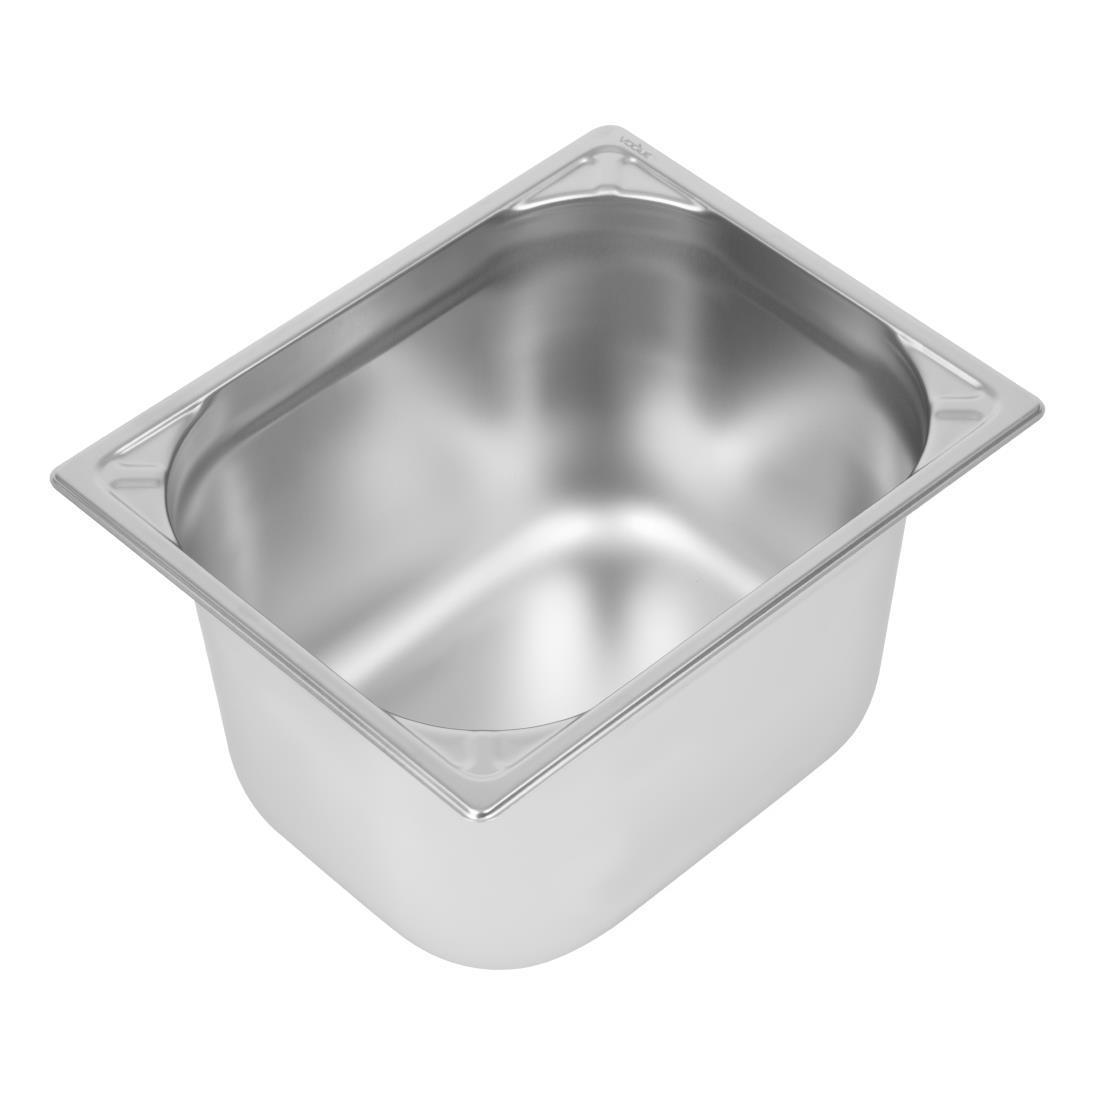 Vogue Stainless Steel Vogue CD550 Microwave Shelf